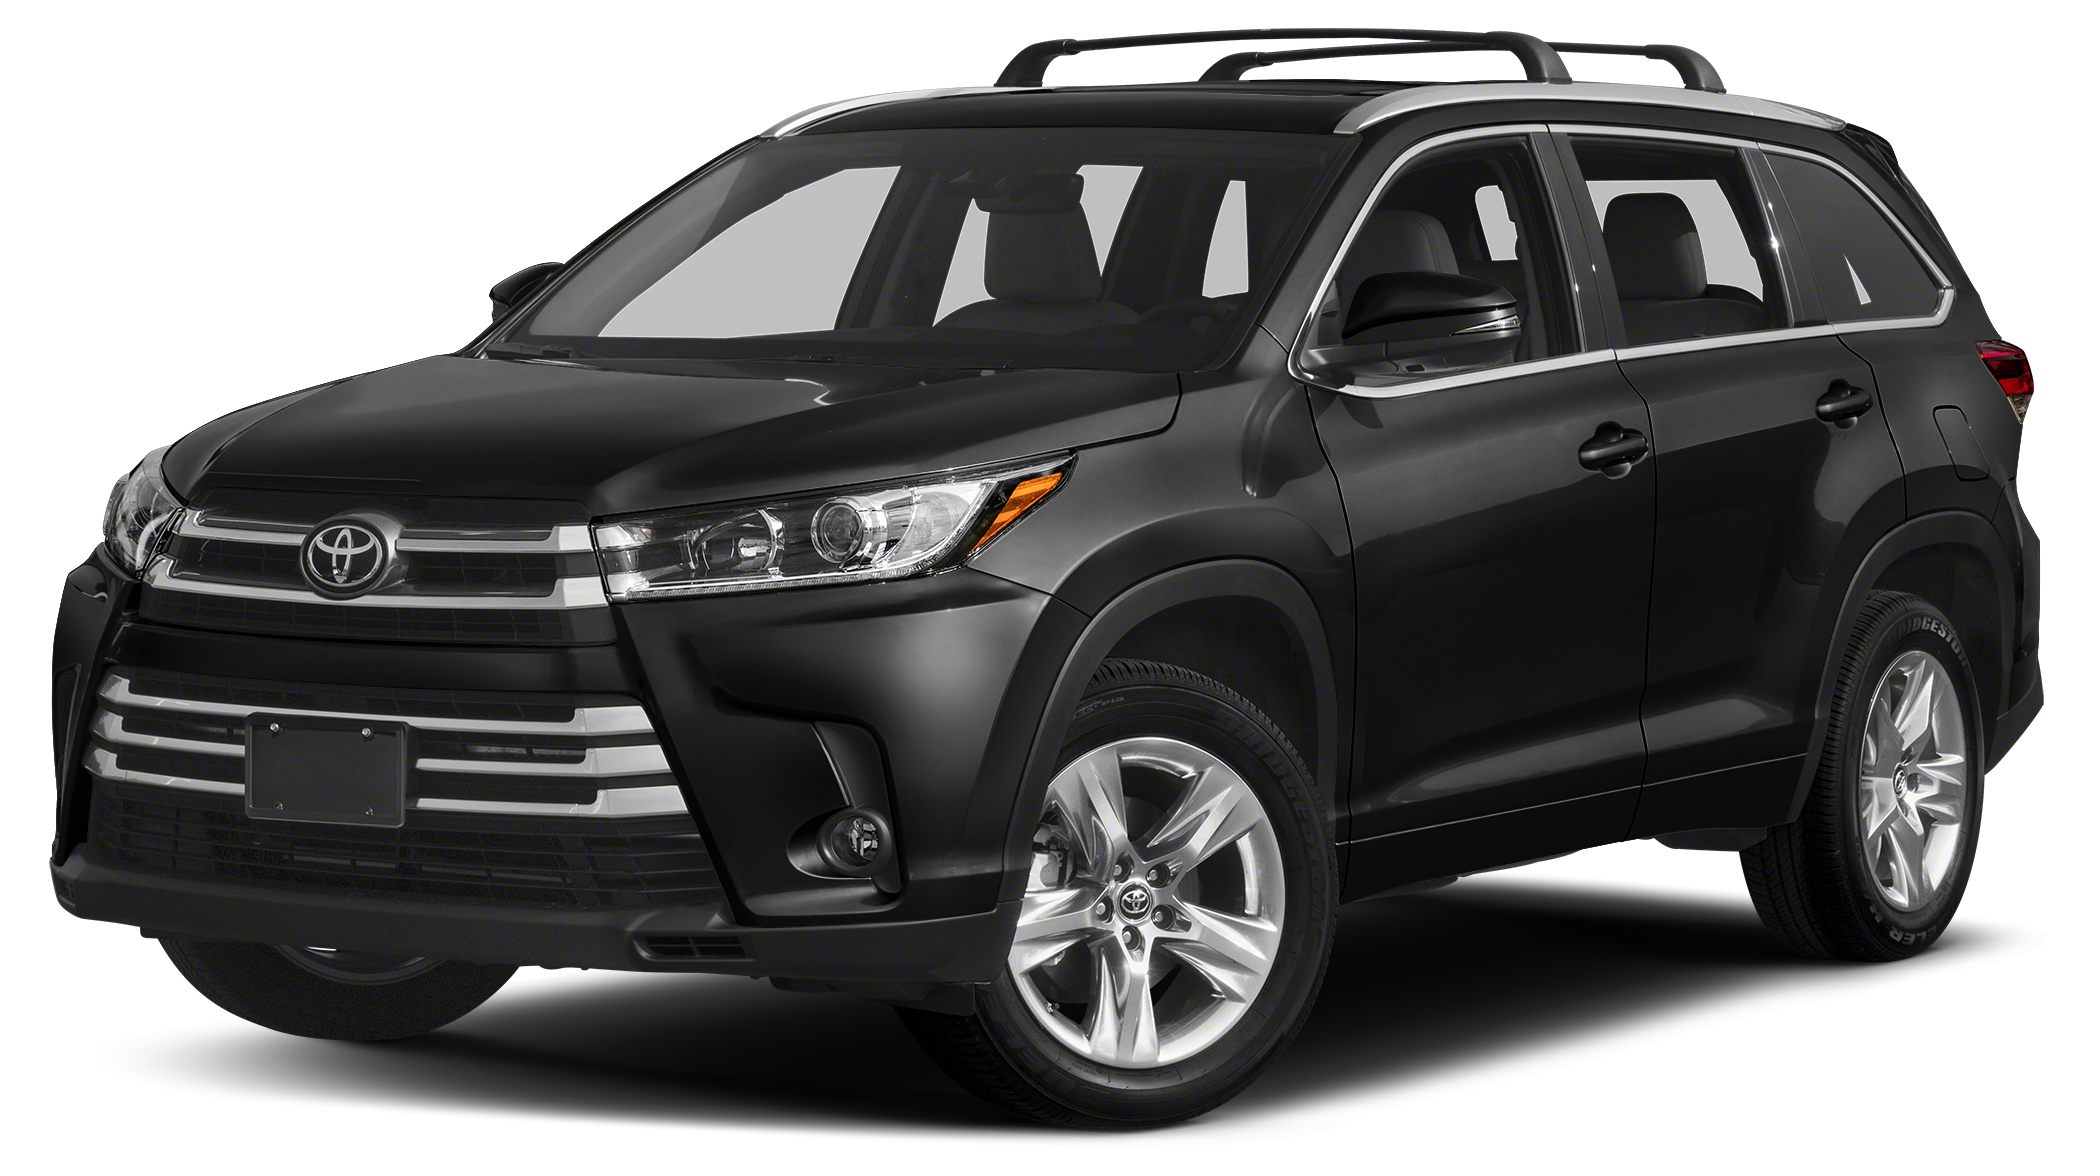 2017 Toyota Highlander Limited 3rd Row Seat DVD Heated Leather Seats Sunroof NAV All Wheel Dr